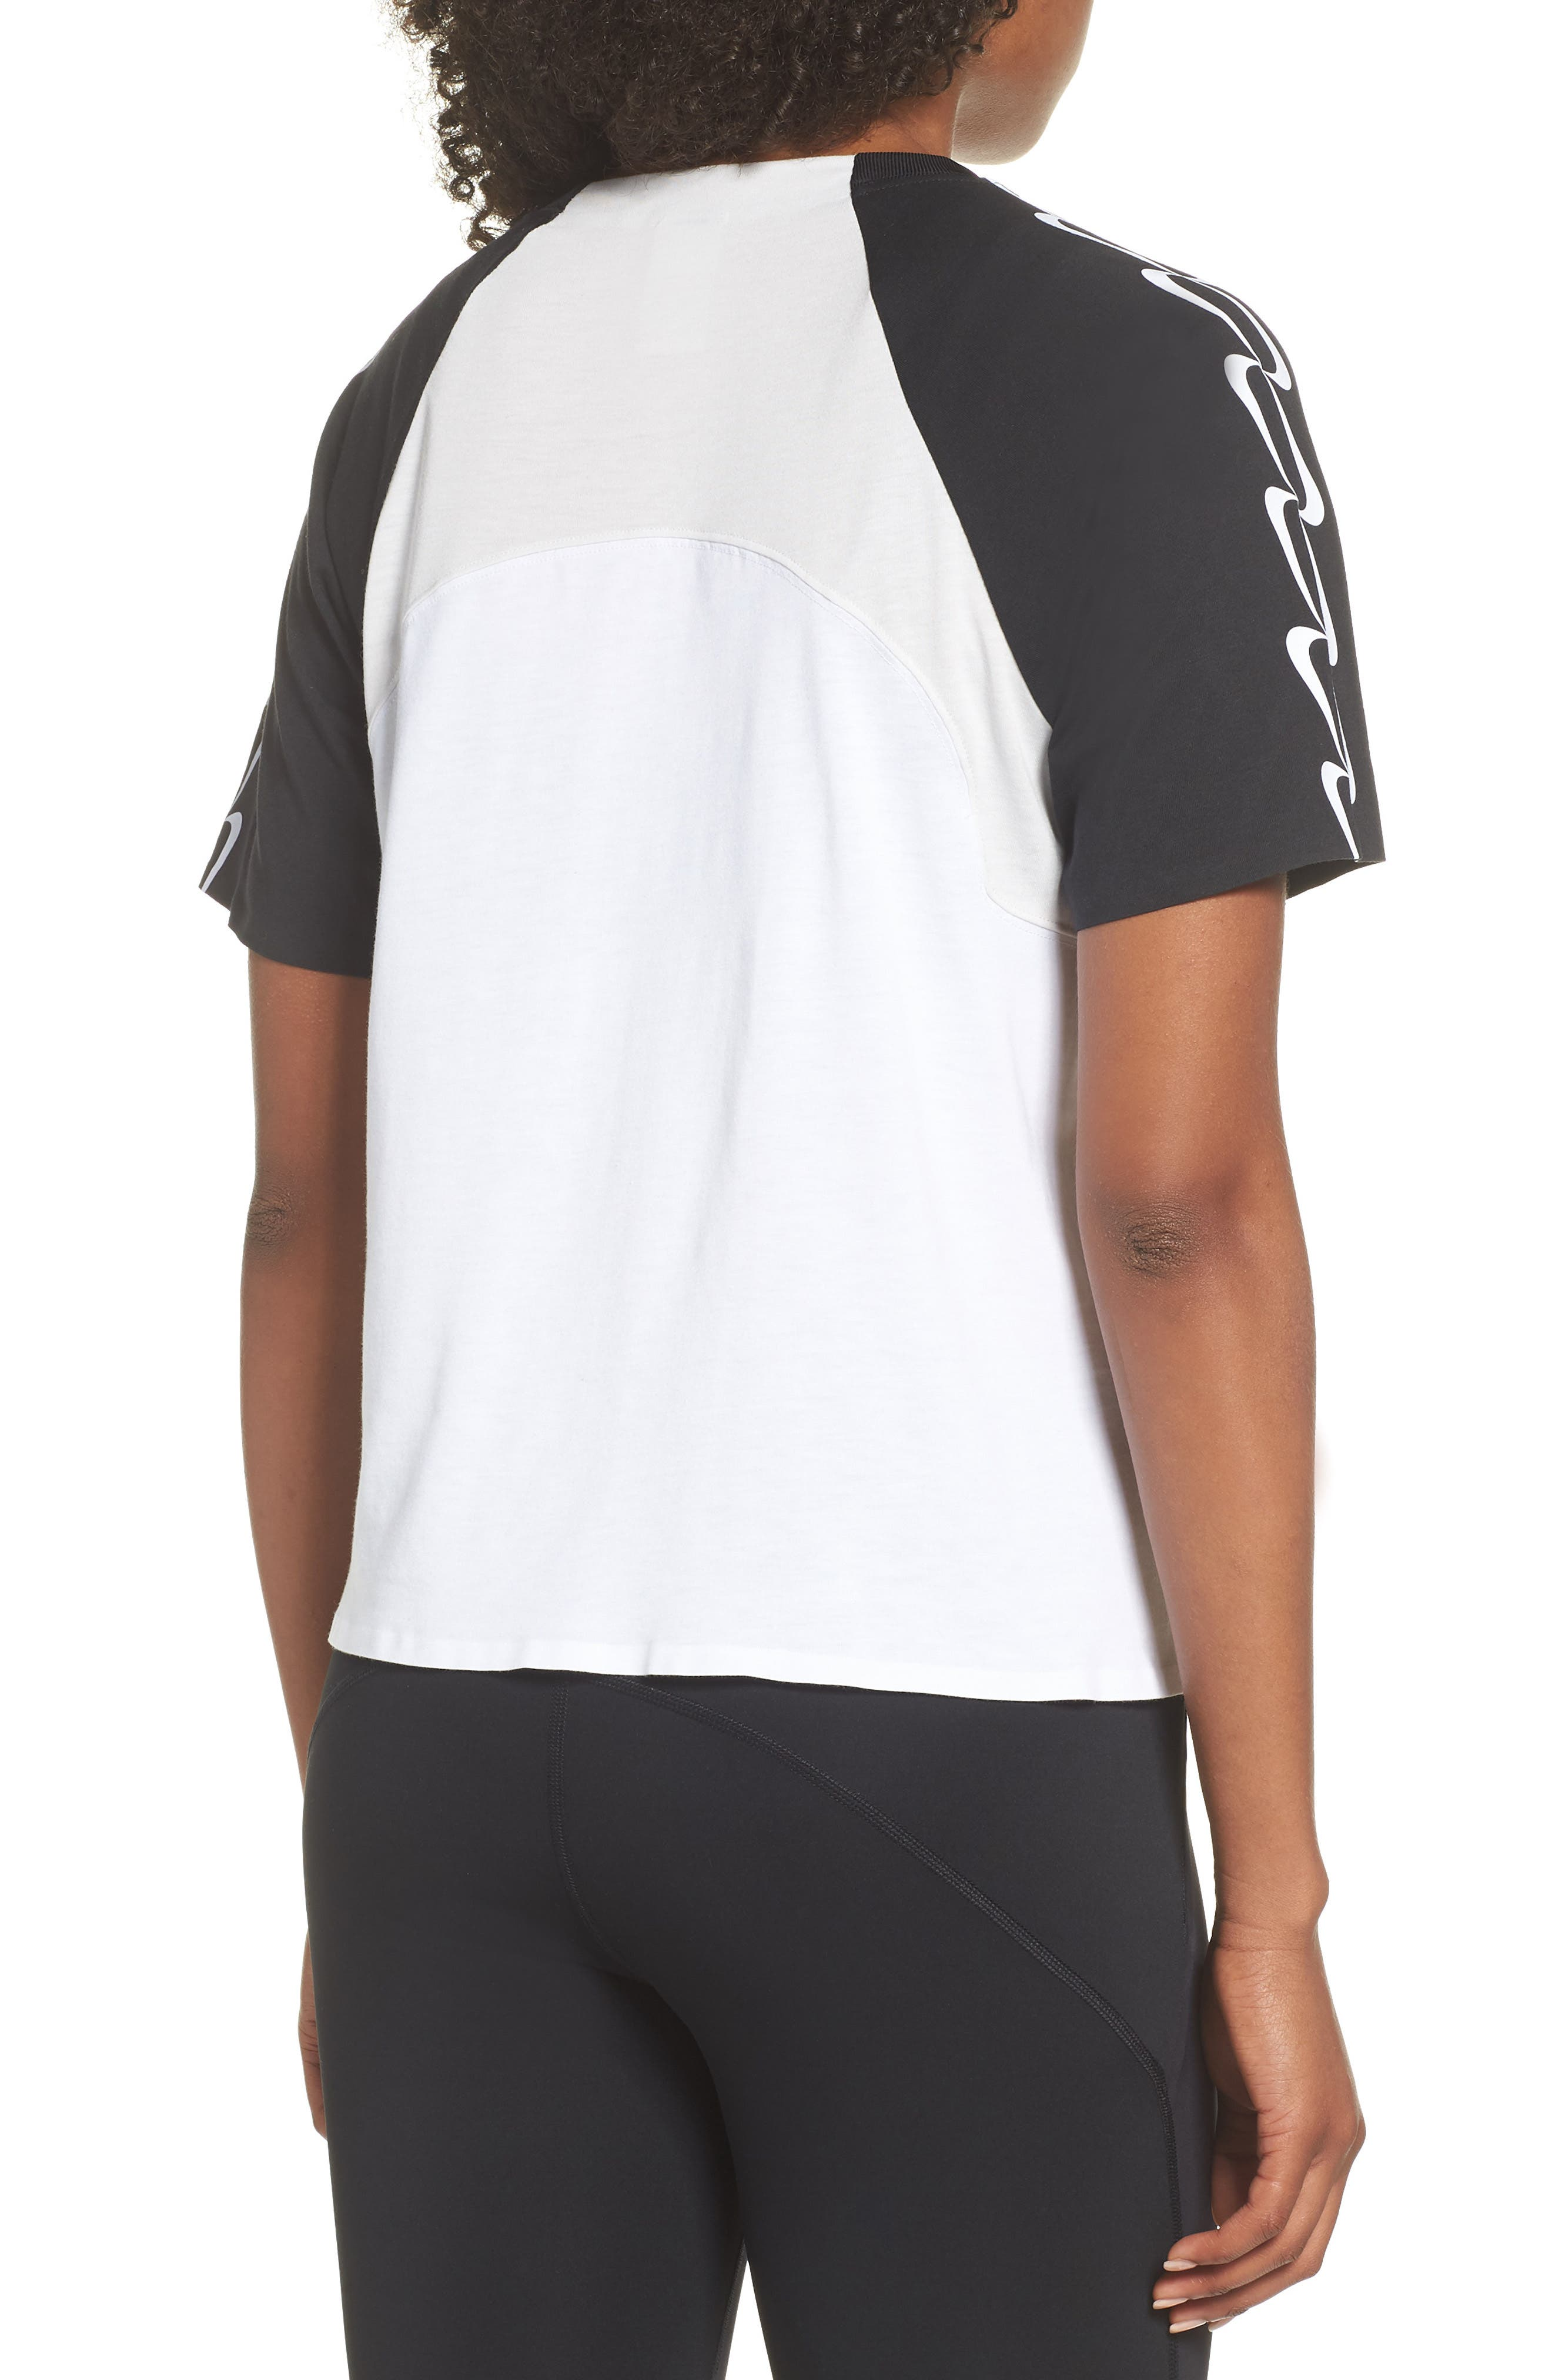 NRG Women's Dri-FIT Short Sleeve Top,                             Alternate thumbnail 2, color,                             Black/ White/ Vast Grey/ Black